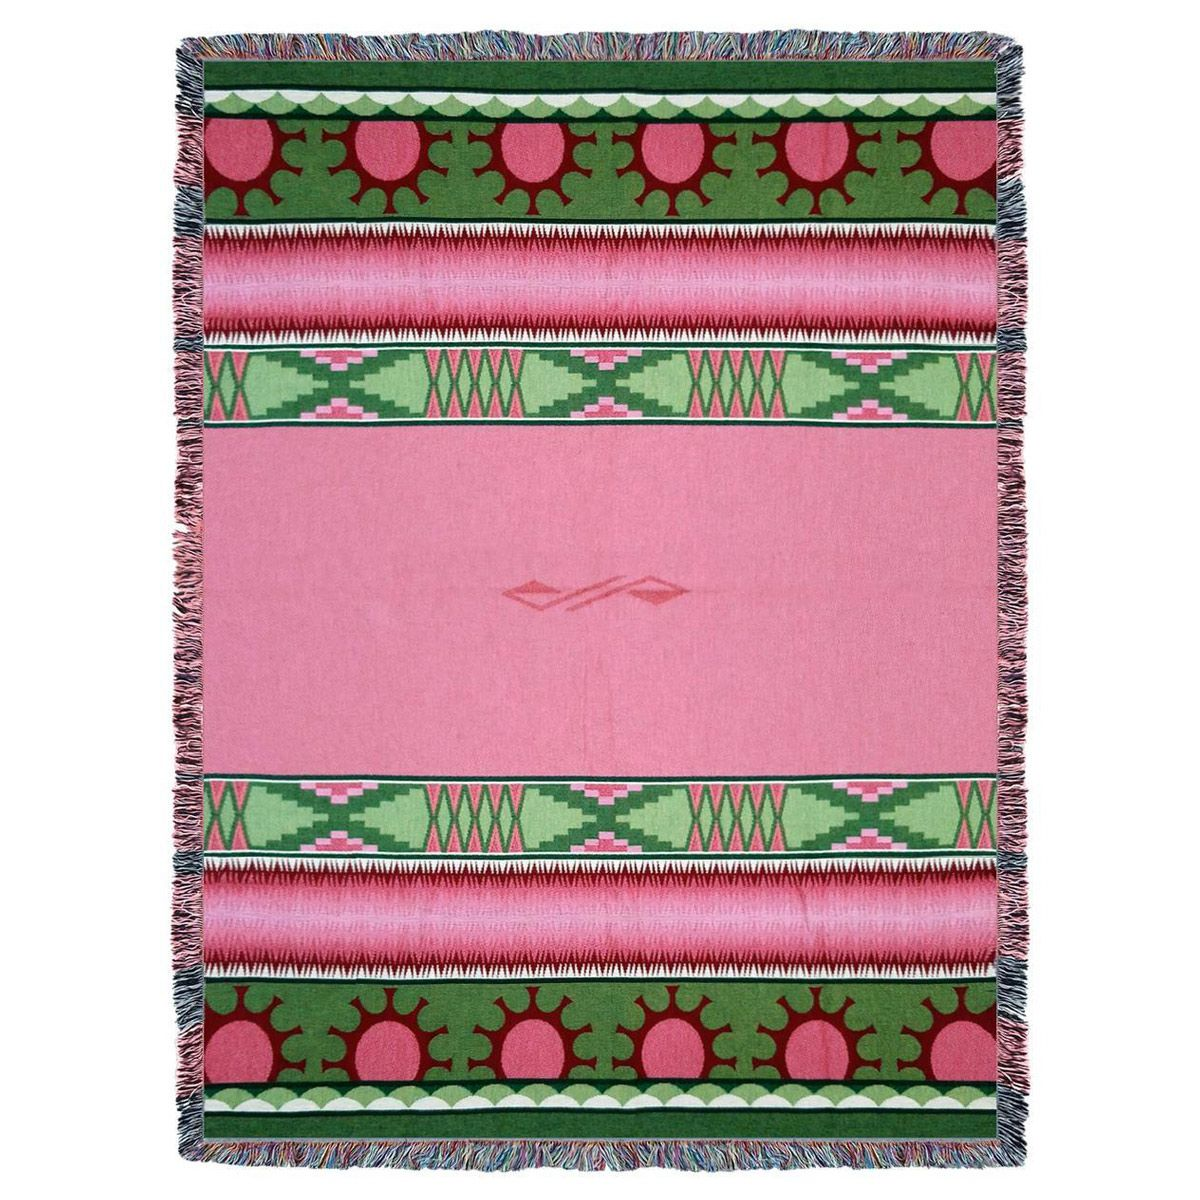 Concho Springs Rose Tapestry Throw